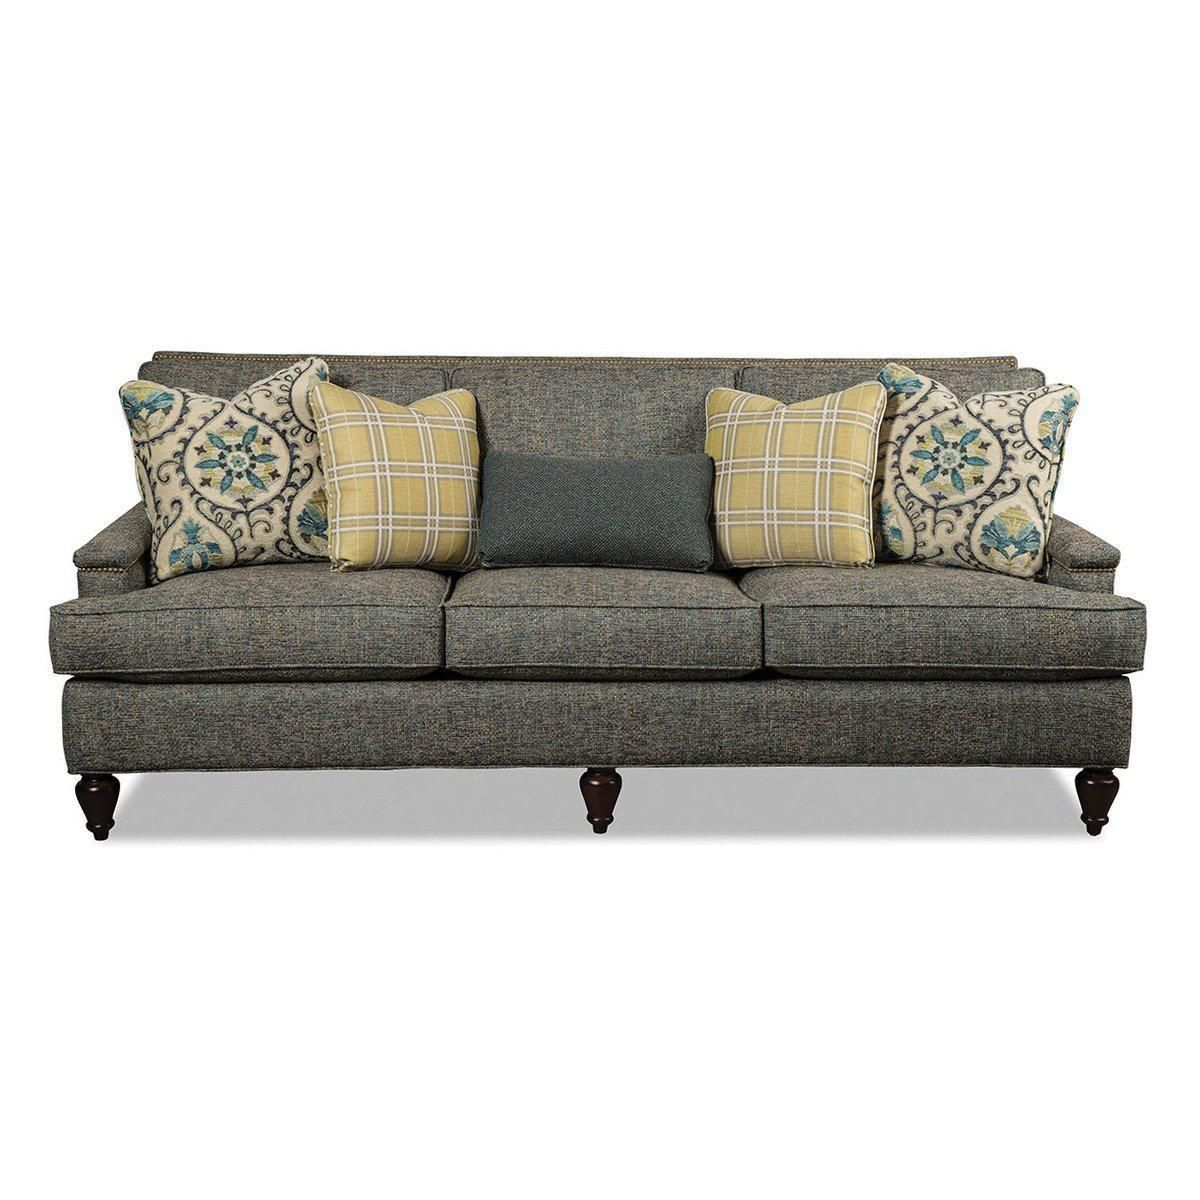 Patio Furniture Stores Franklin Tn: Sofa, Transitional Sofas, Furniture